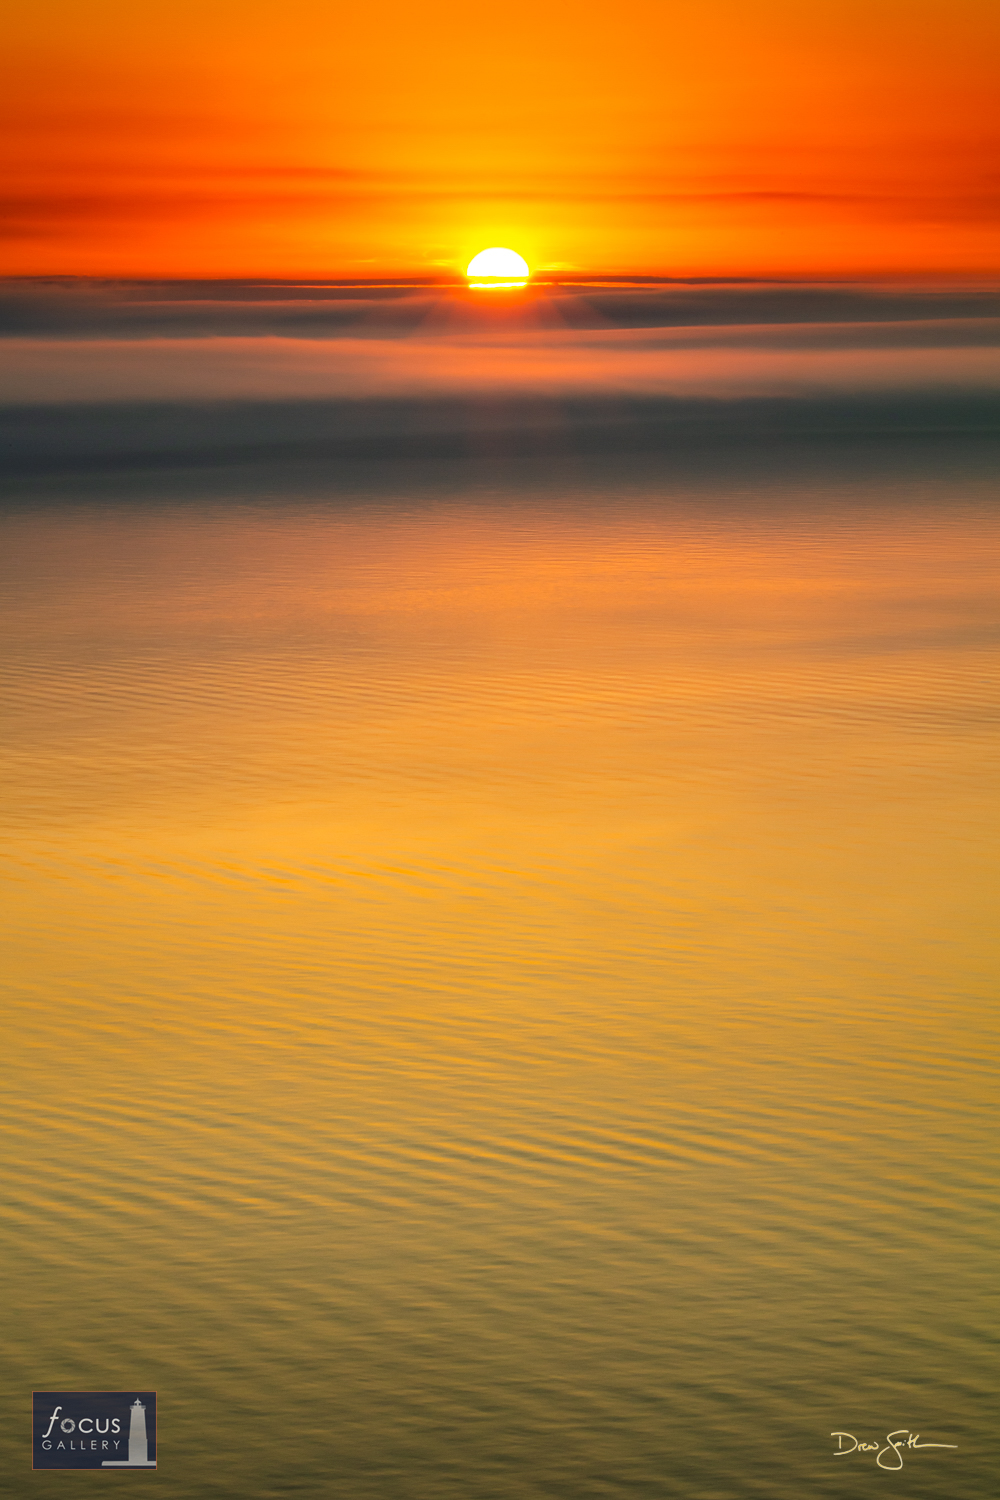 Photo © Drew Smith The sun sets into a low cloud layer over a calm Lake Michigan as seen from the bluffs north of Frankfort.